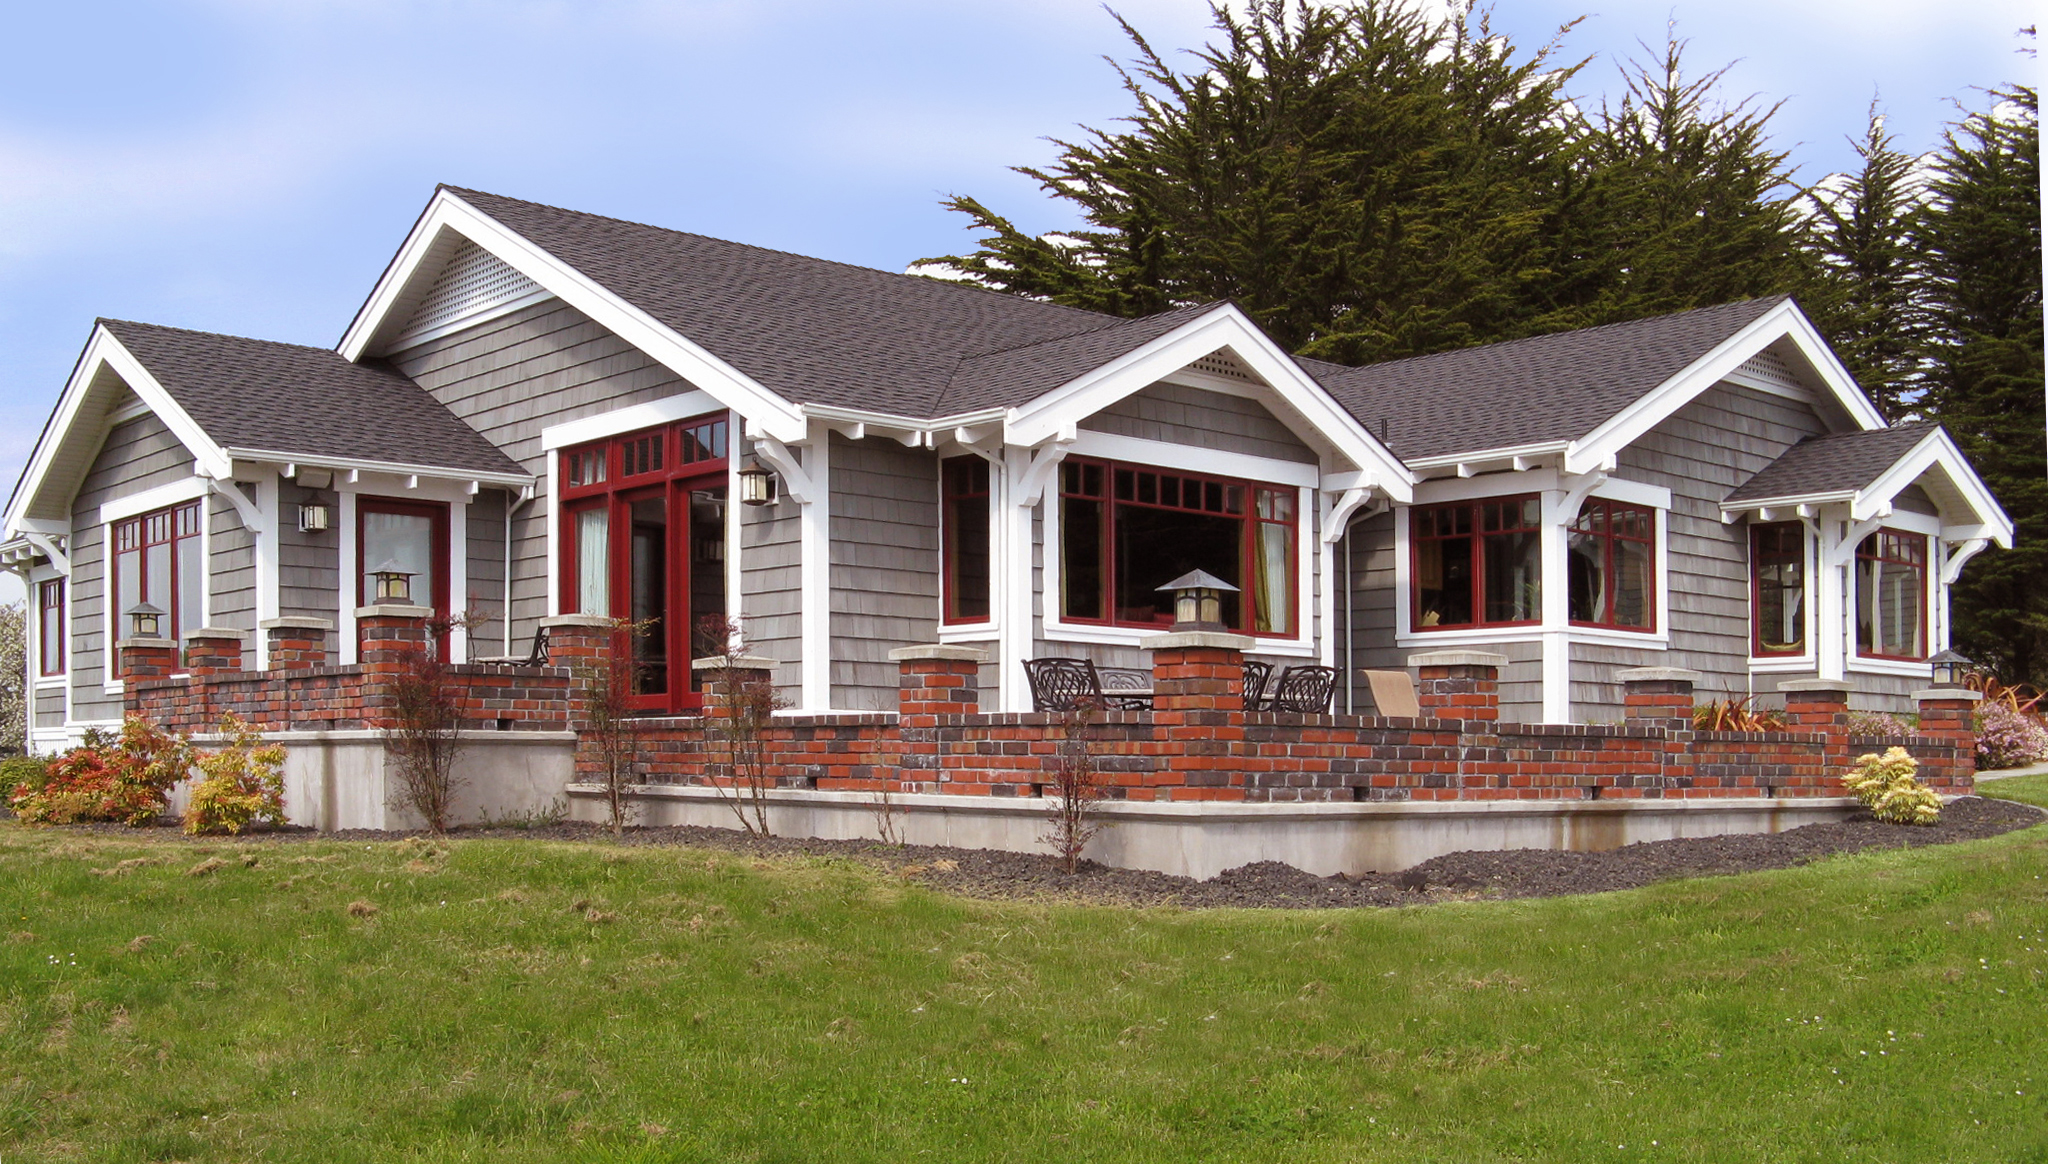 New residential construction - Humboldt County